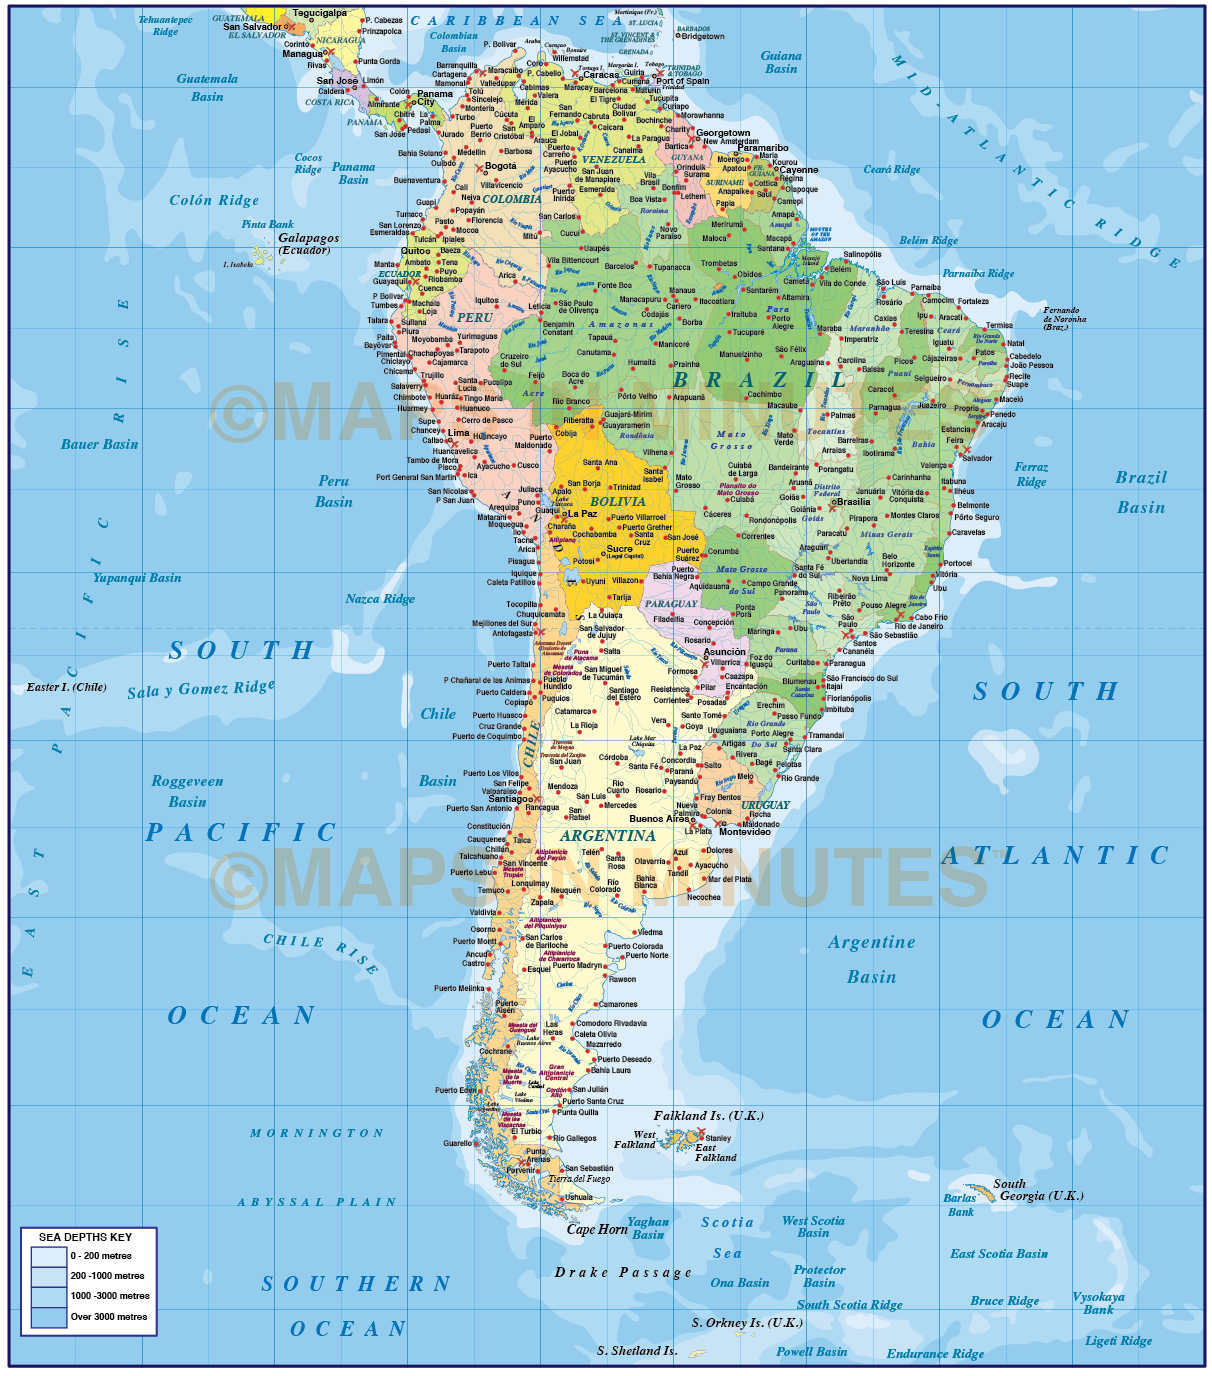 south america map with longitude and latitude lines Digital Vector South America Political Map With Sea Contours